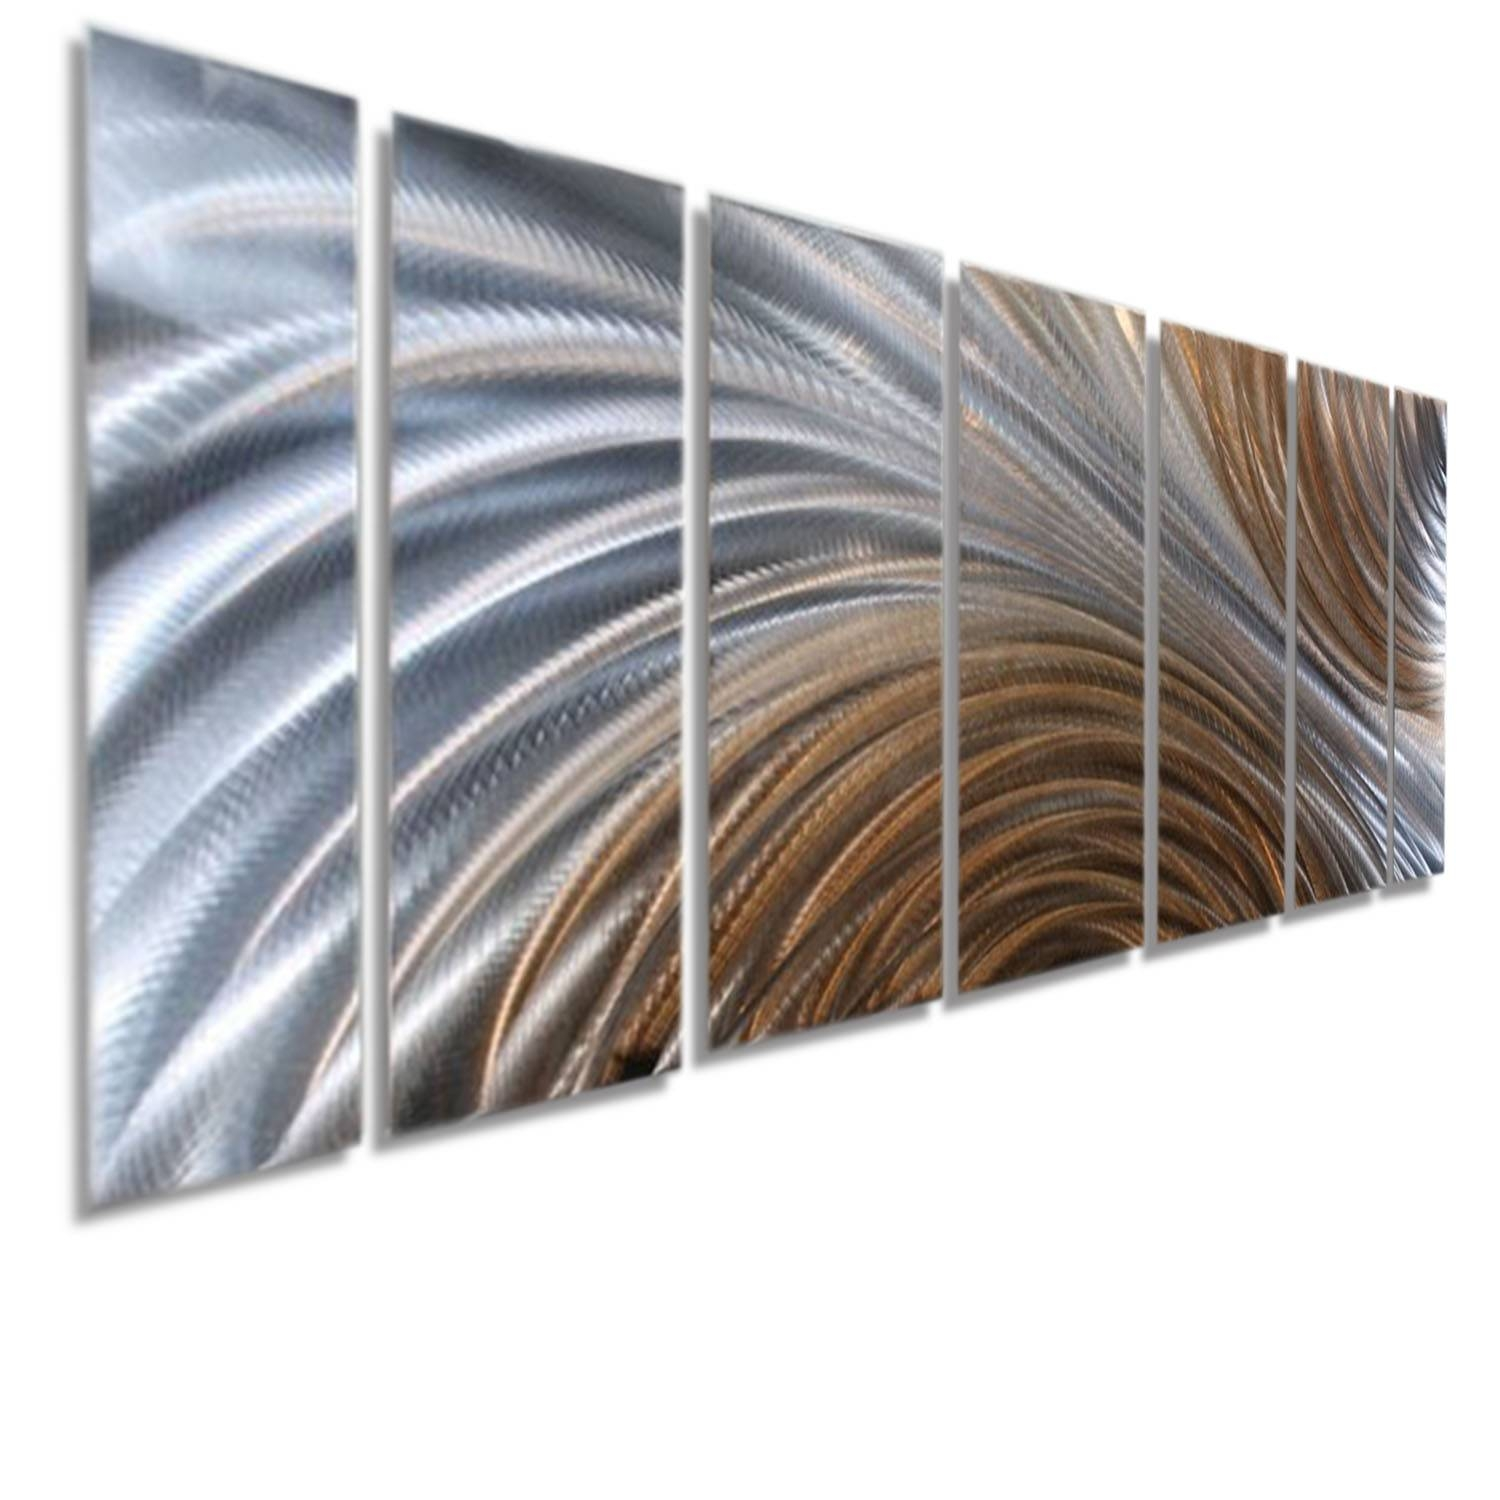 Amber Ascension Silver & Copper Abstract Metal Wall Artjon Pertaining To Most Recently Released Metal Abstract Wall Art (View 7 of 15)